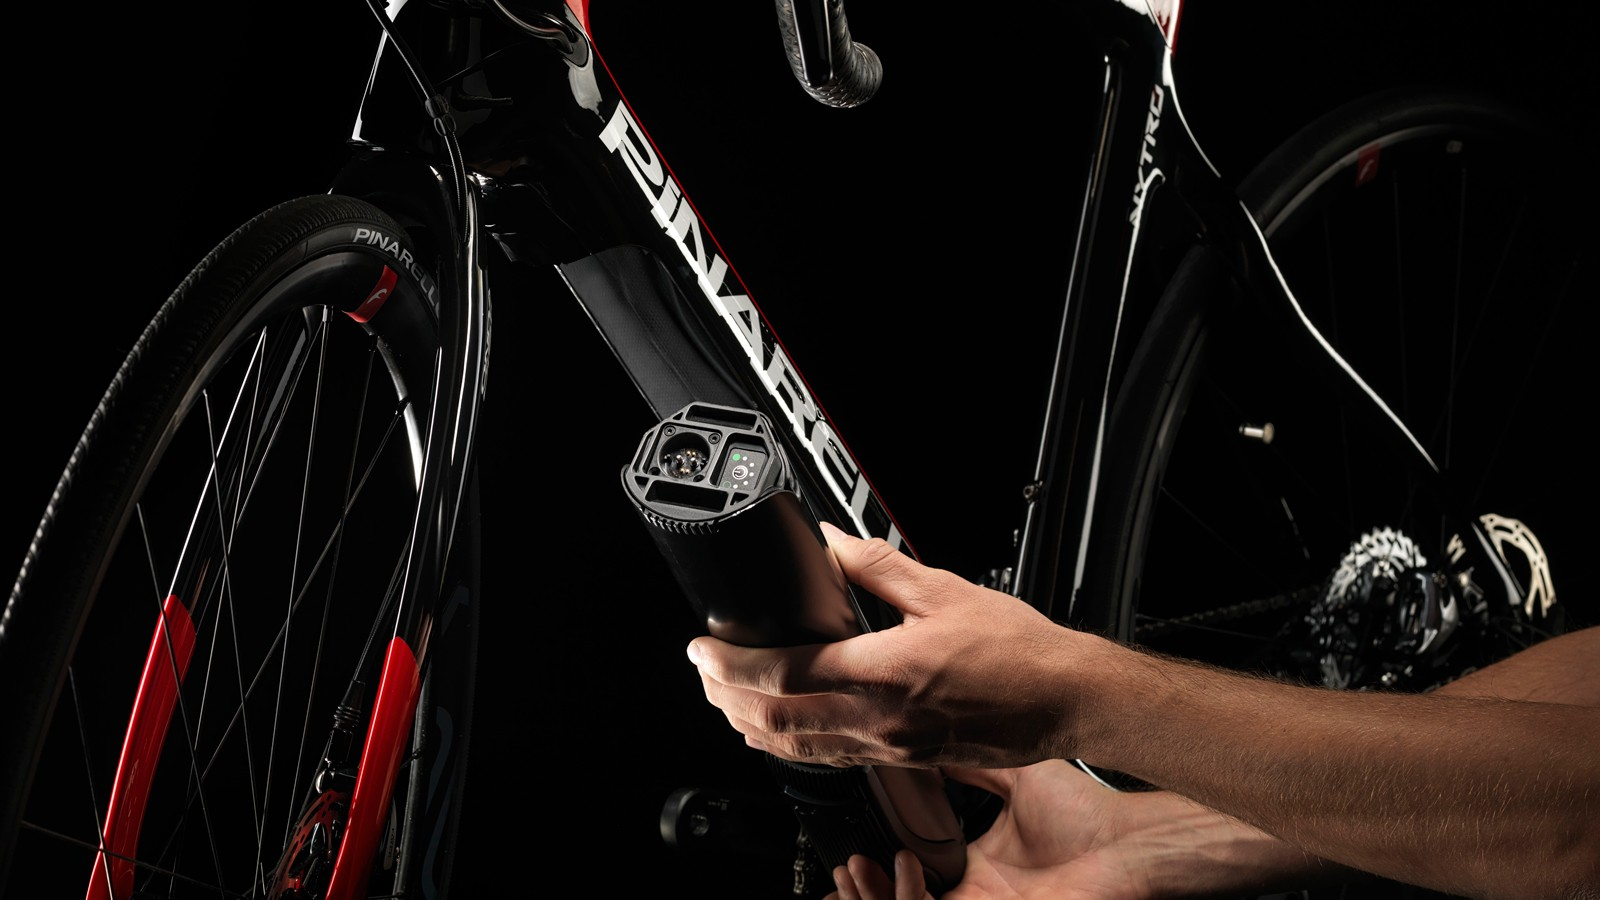 The battery and motor are neatly integrated into the frame's downtube